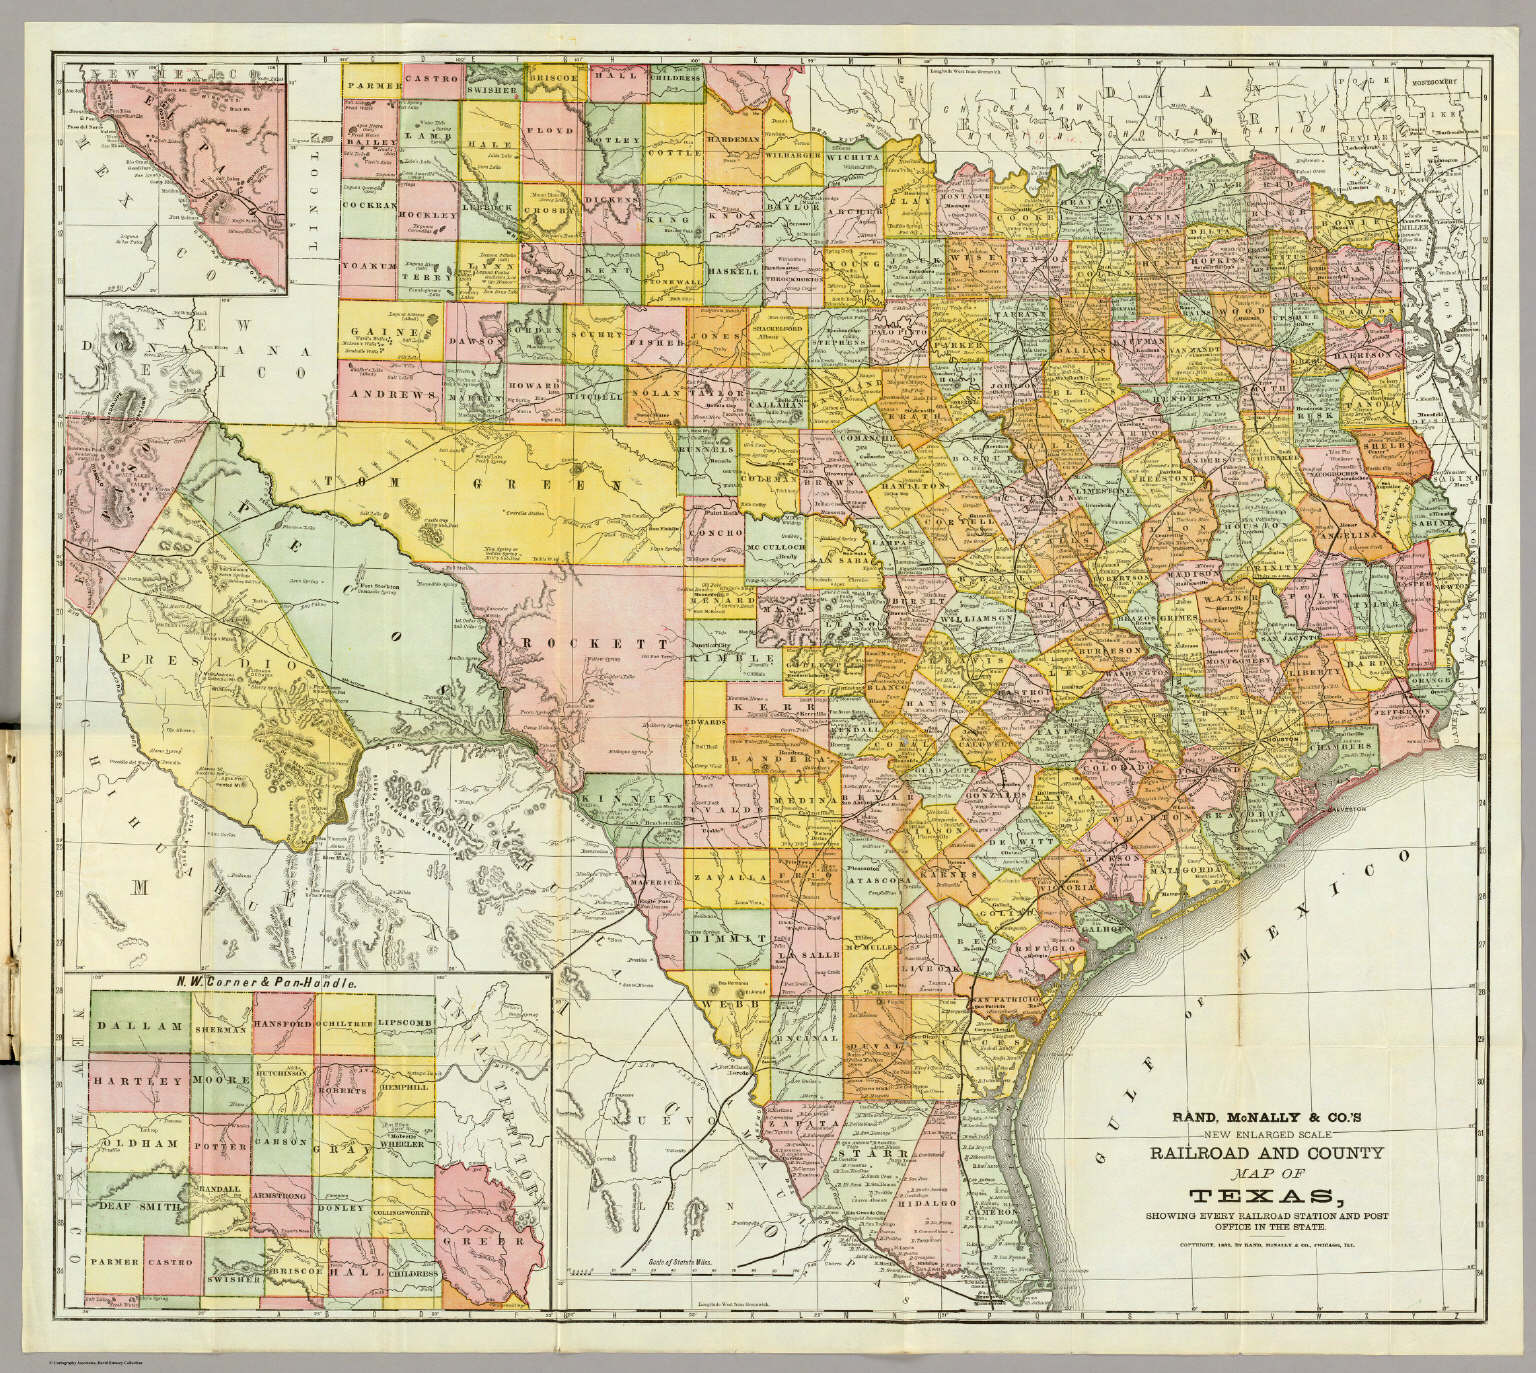 Map Of Texas County.Rand Mcnally Railroad And County Map Of Texas David Rumsey